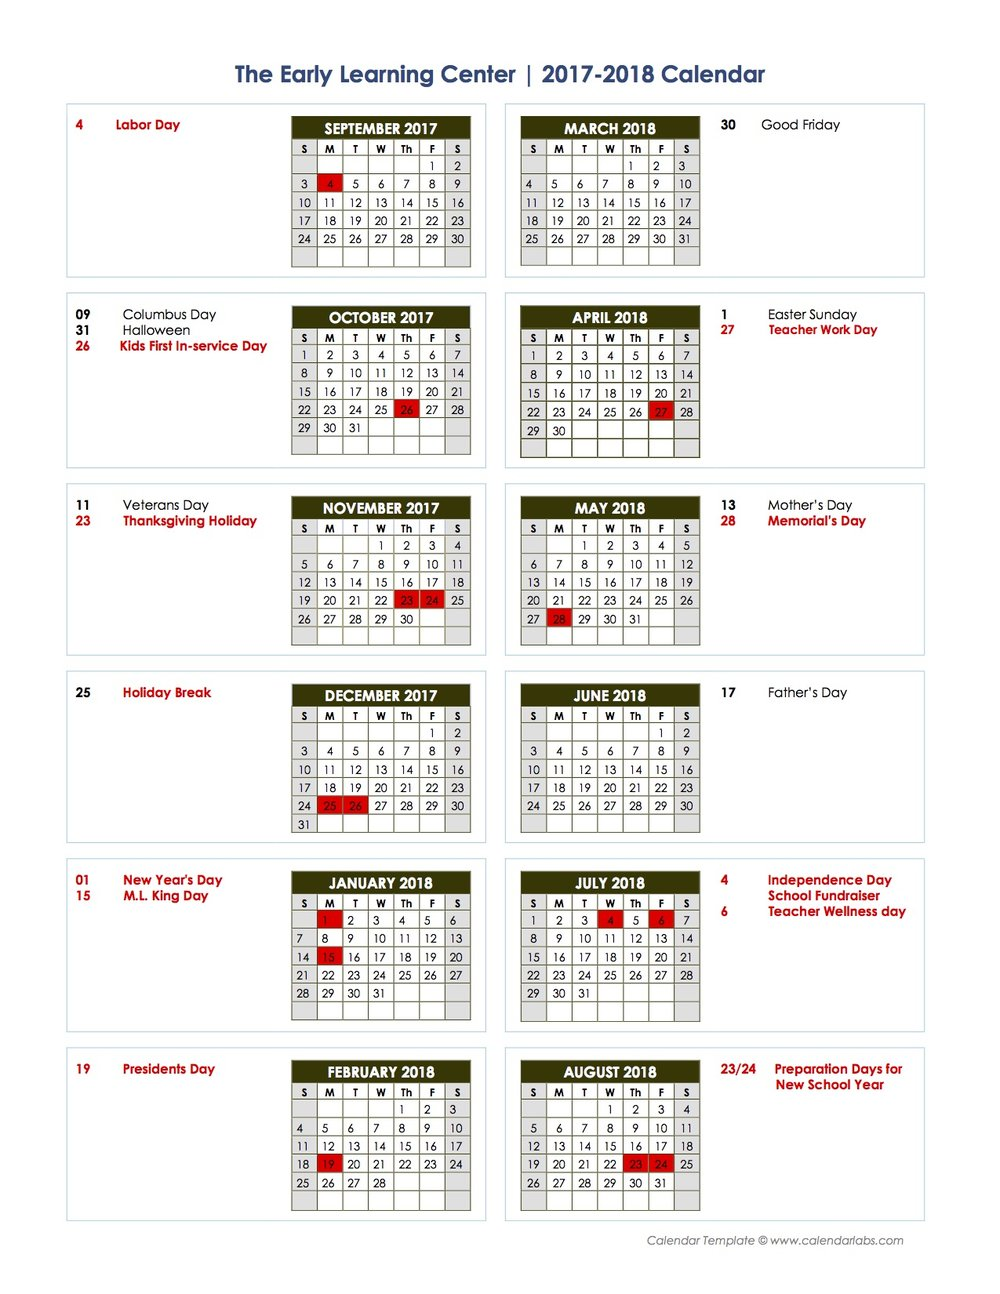 *Days in RED indicate days where the school is closed due to holidays or teacher work days.